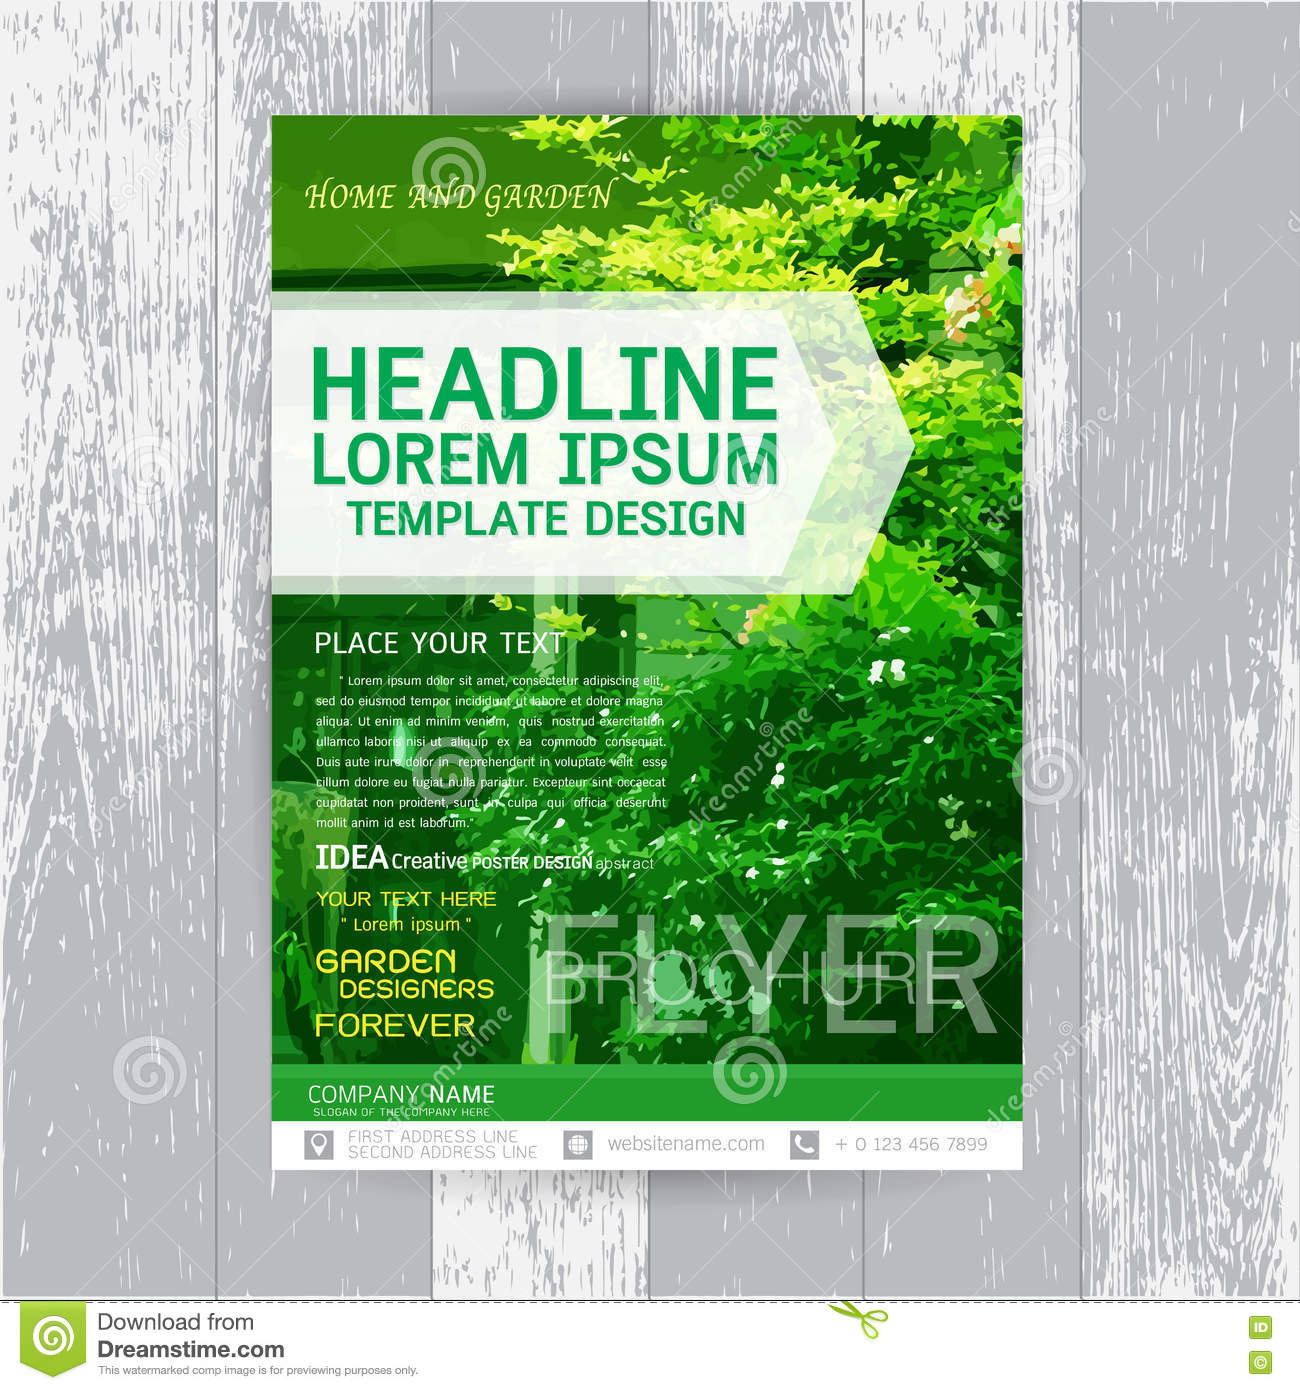 Poster design layout templates - Abstract Annual Background Bookmarks Bright Brochure Business Cover Design Flyers Layout Leaflet Modern Pencil Poster Presentation Report Size Template